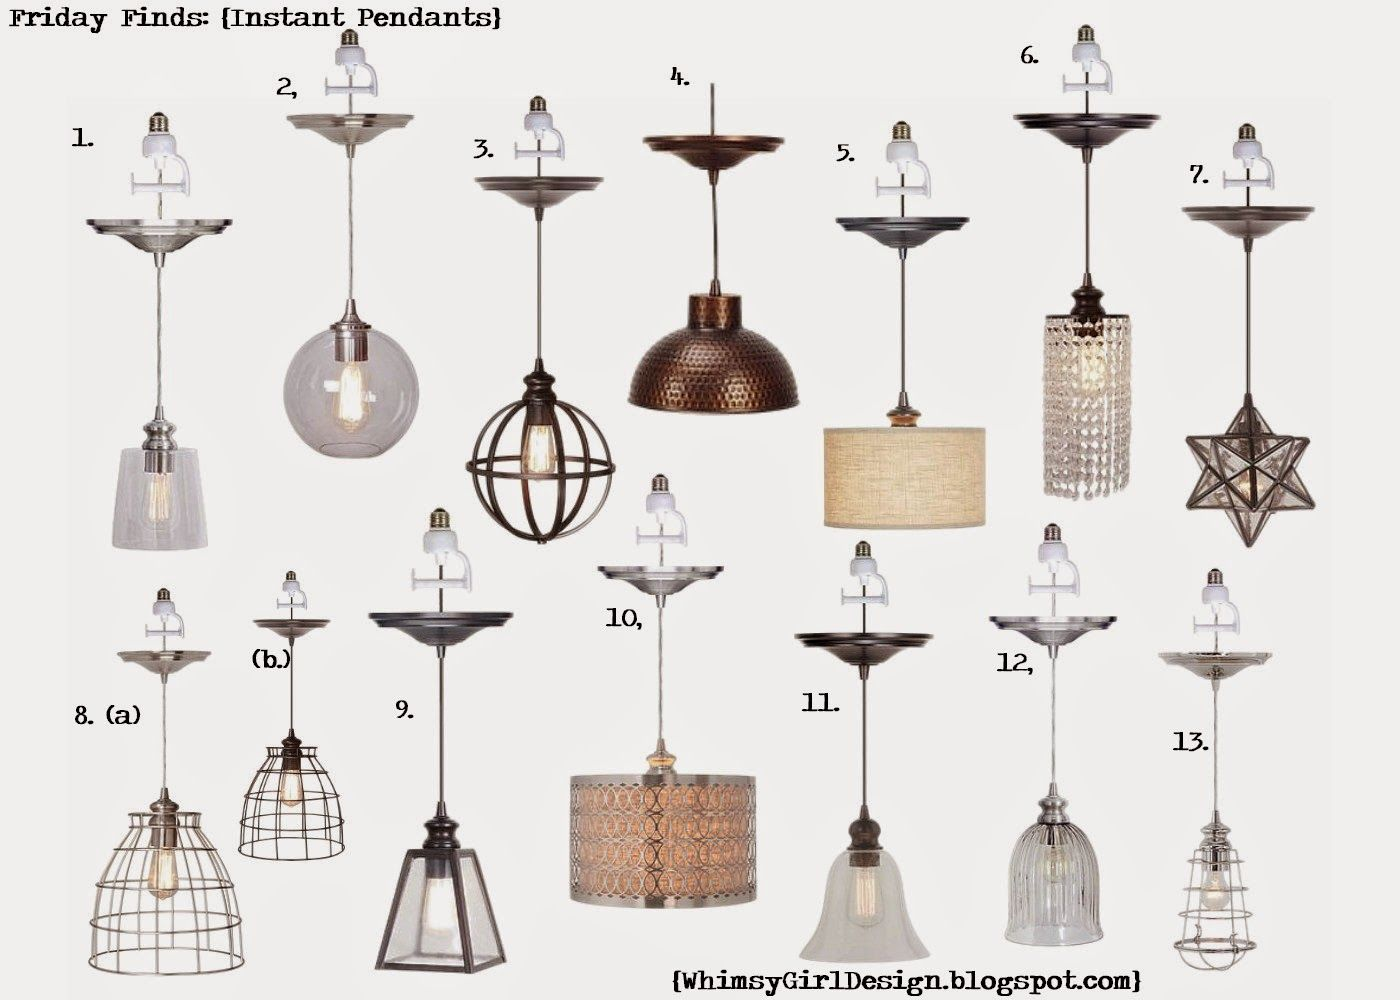 Whimsy Design Friday Finds Recessed Lighting